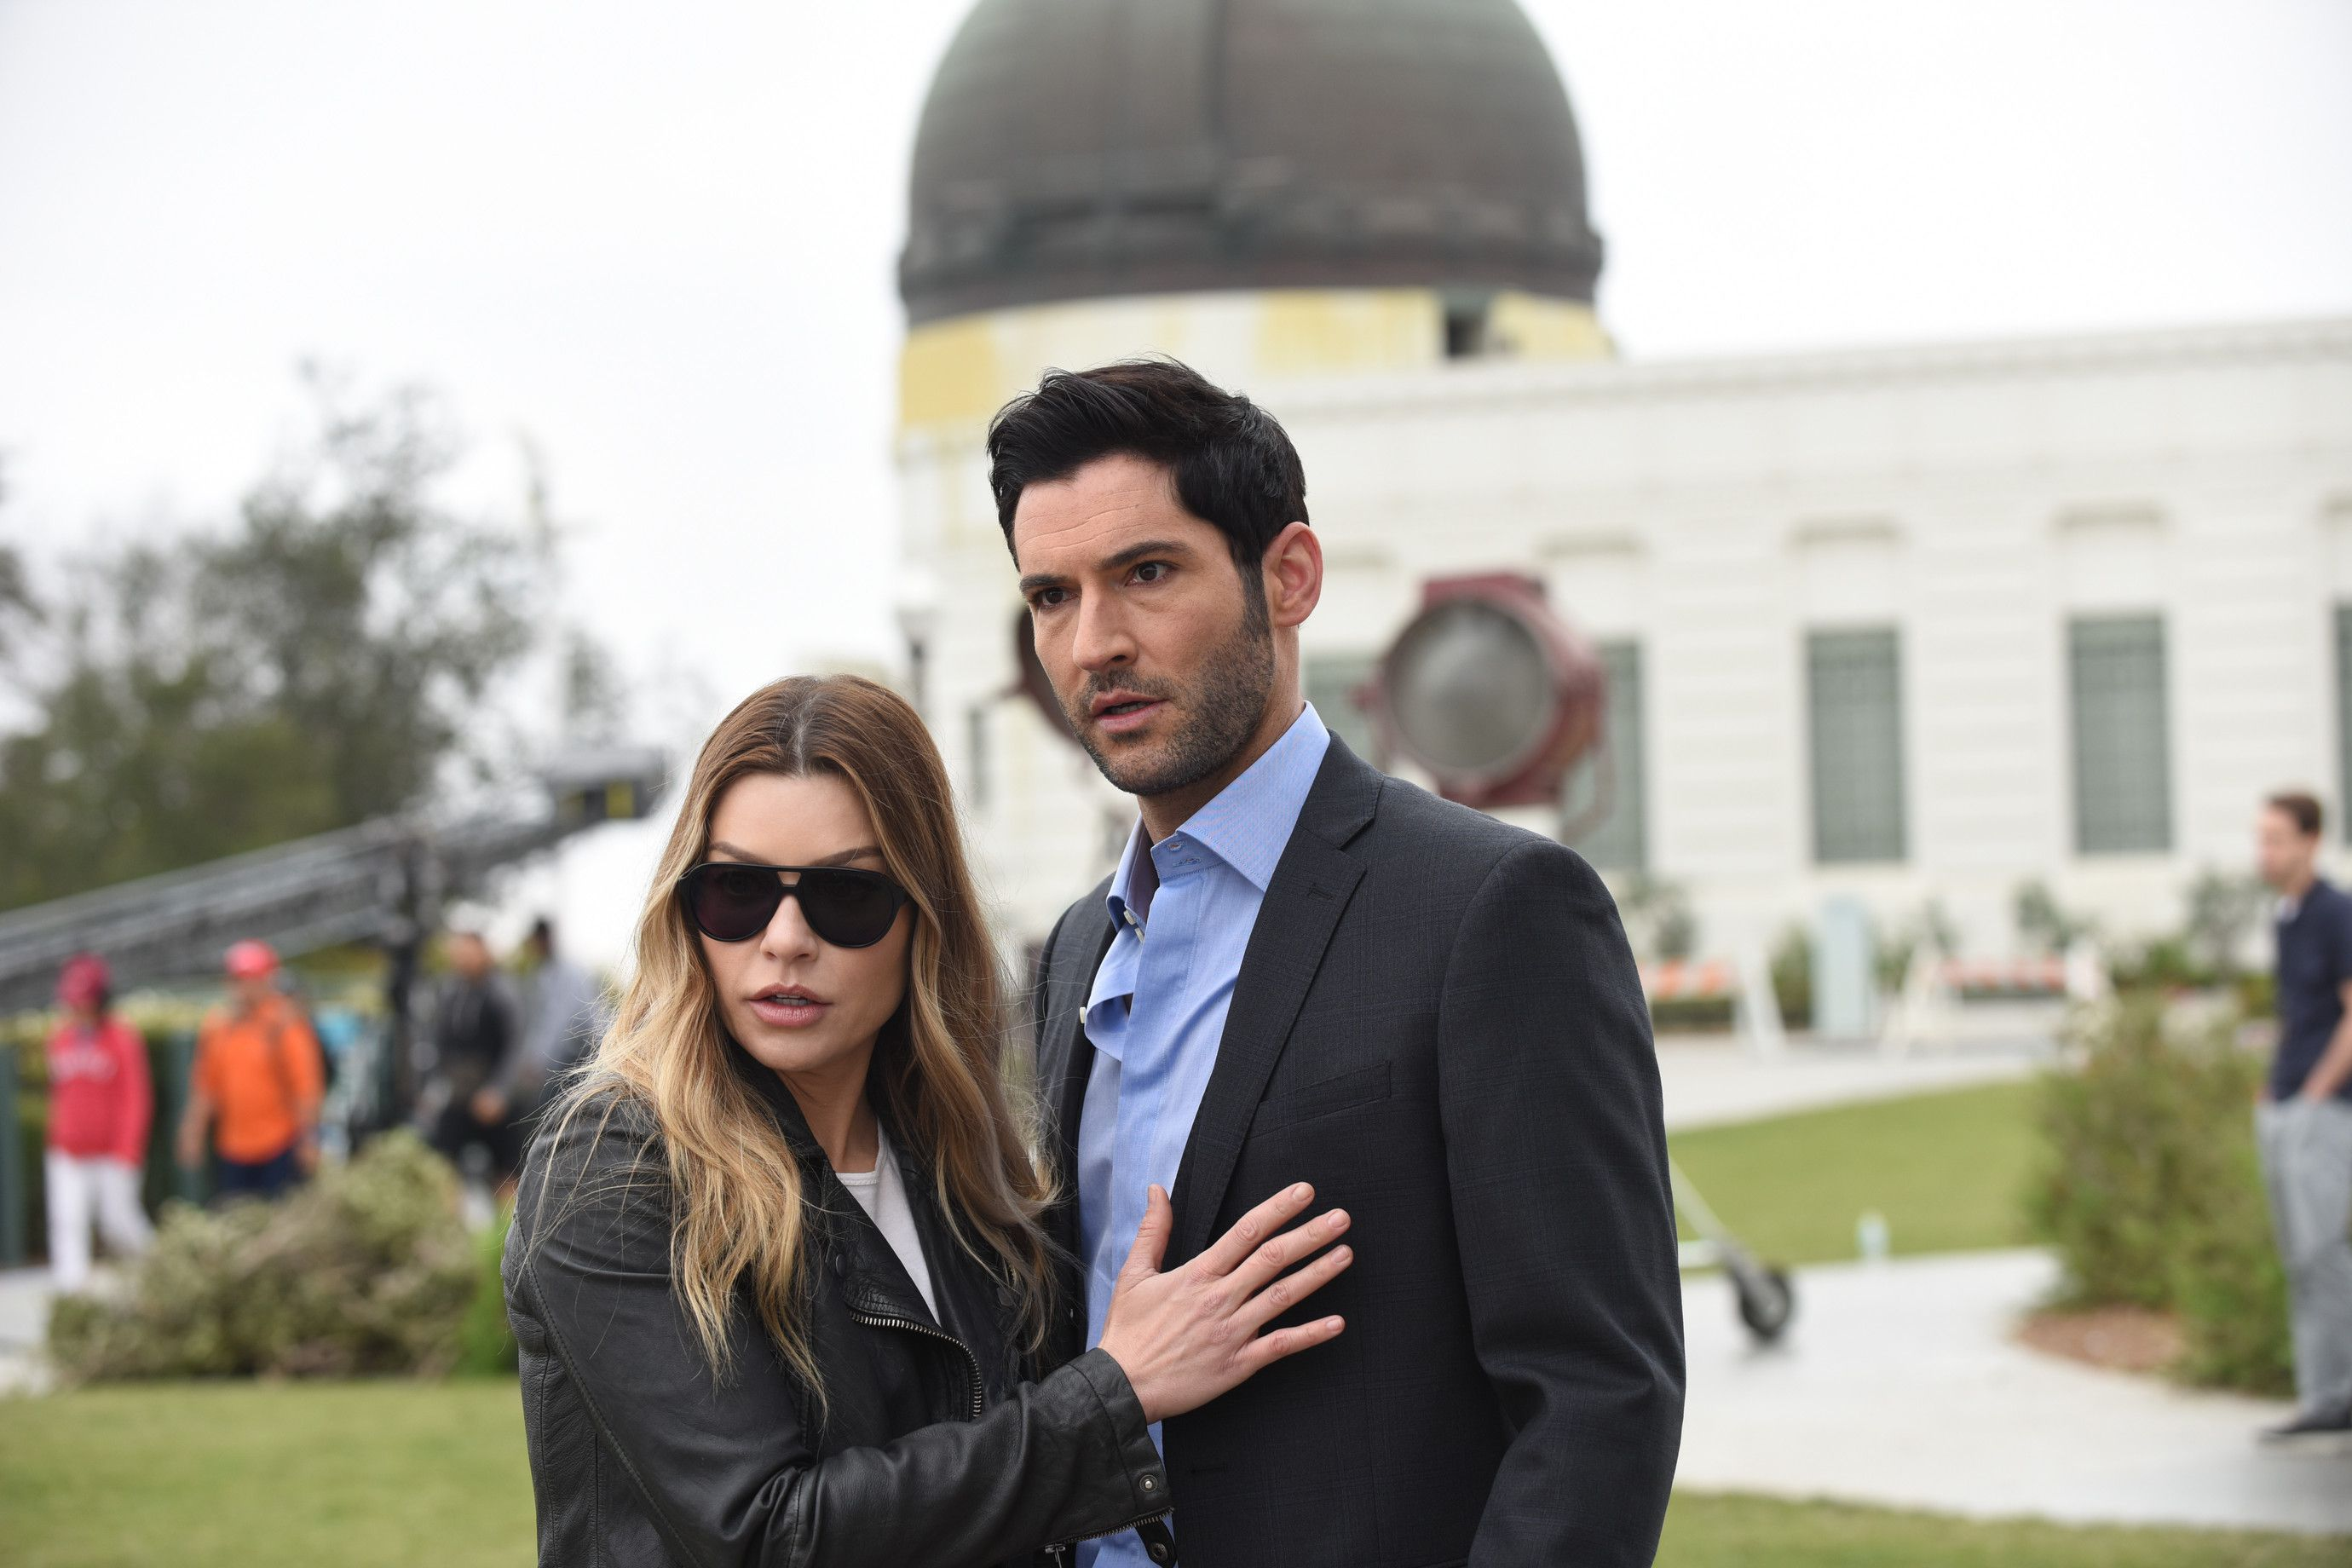 Lucifer season 4: Showrunners excited about season 5 release